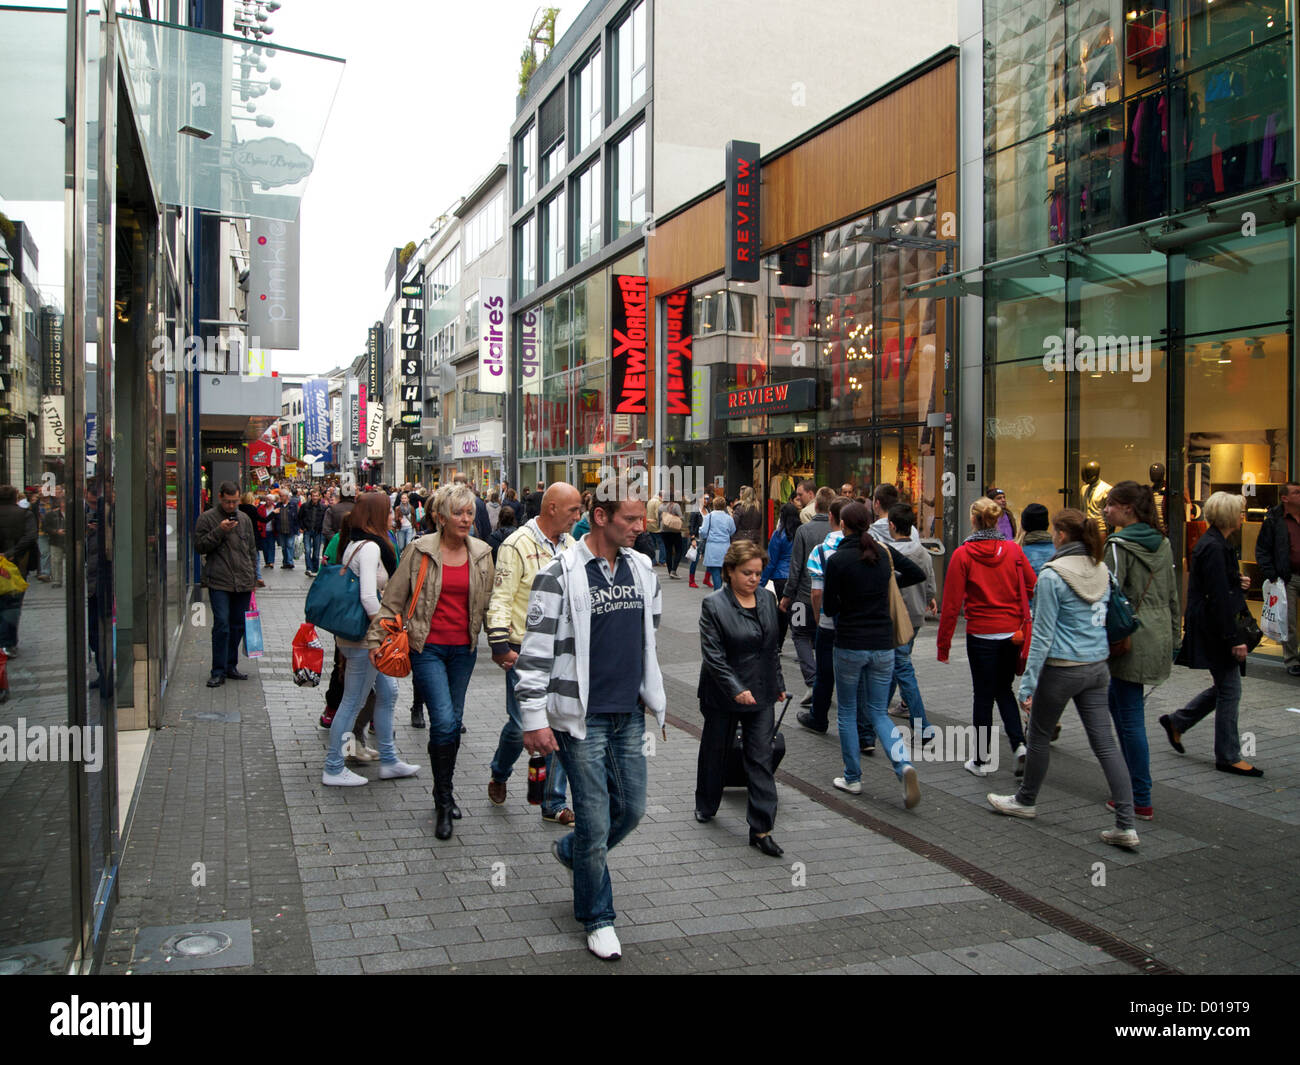 shopping street cologne germany stockfotos shopping street cologne germany bilder alamy. Black Bedroom Furniture Sets. Home Design Ideas